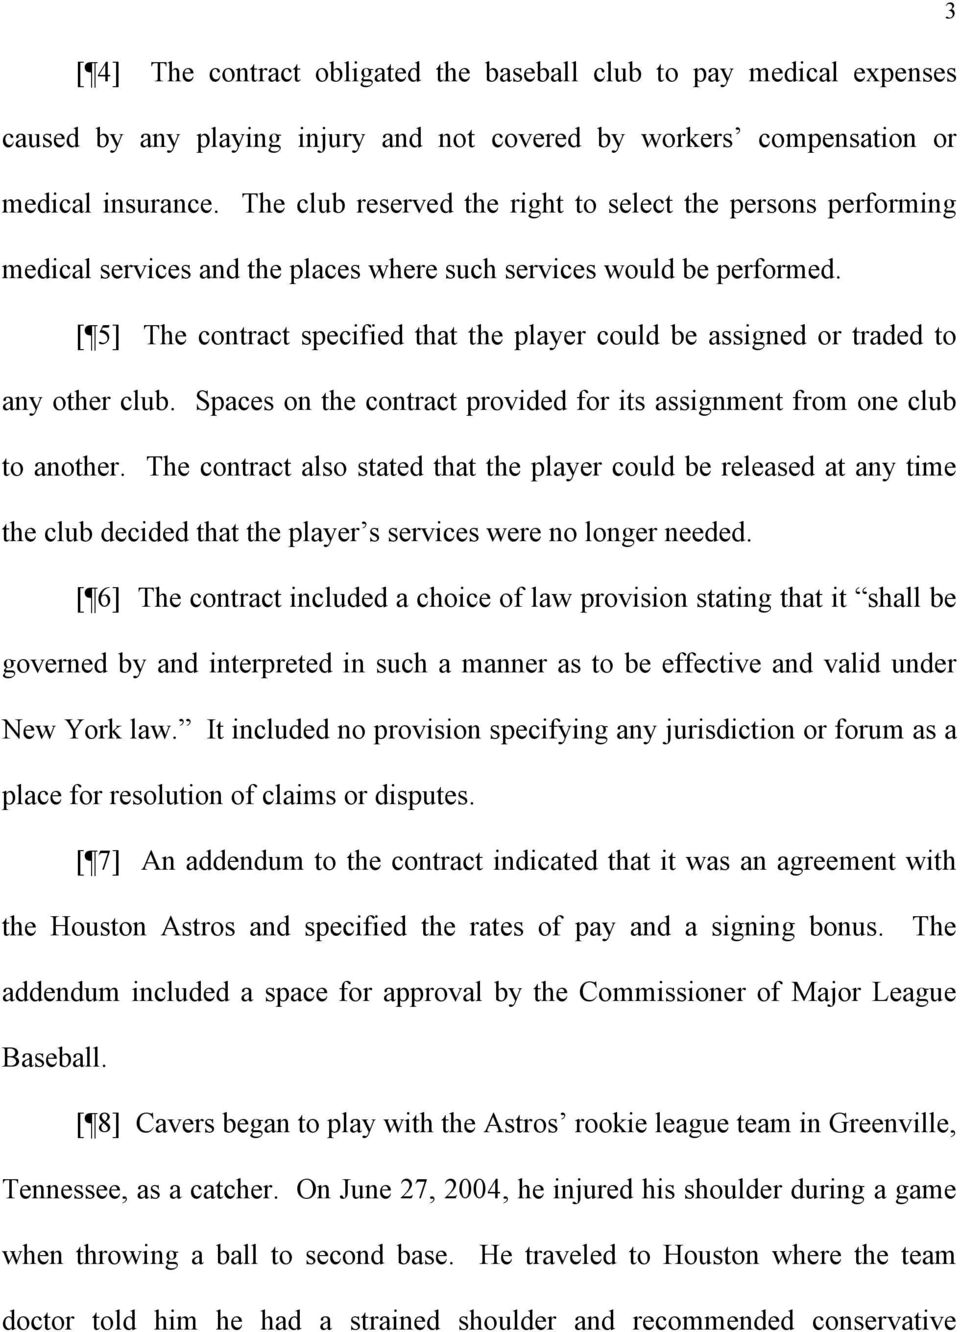 [ 5] The contract specified that the player could be assigned or traded to any other club. Spaces on the contract provided for its assignment from one club to another.